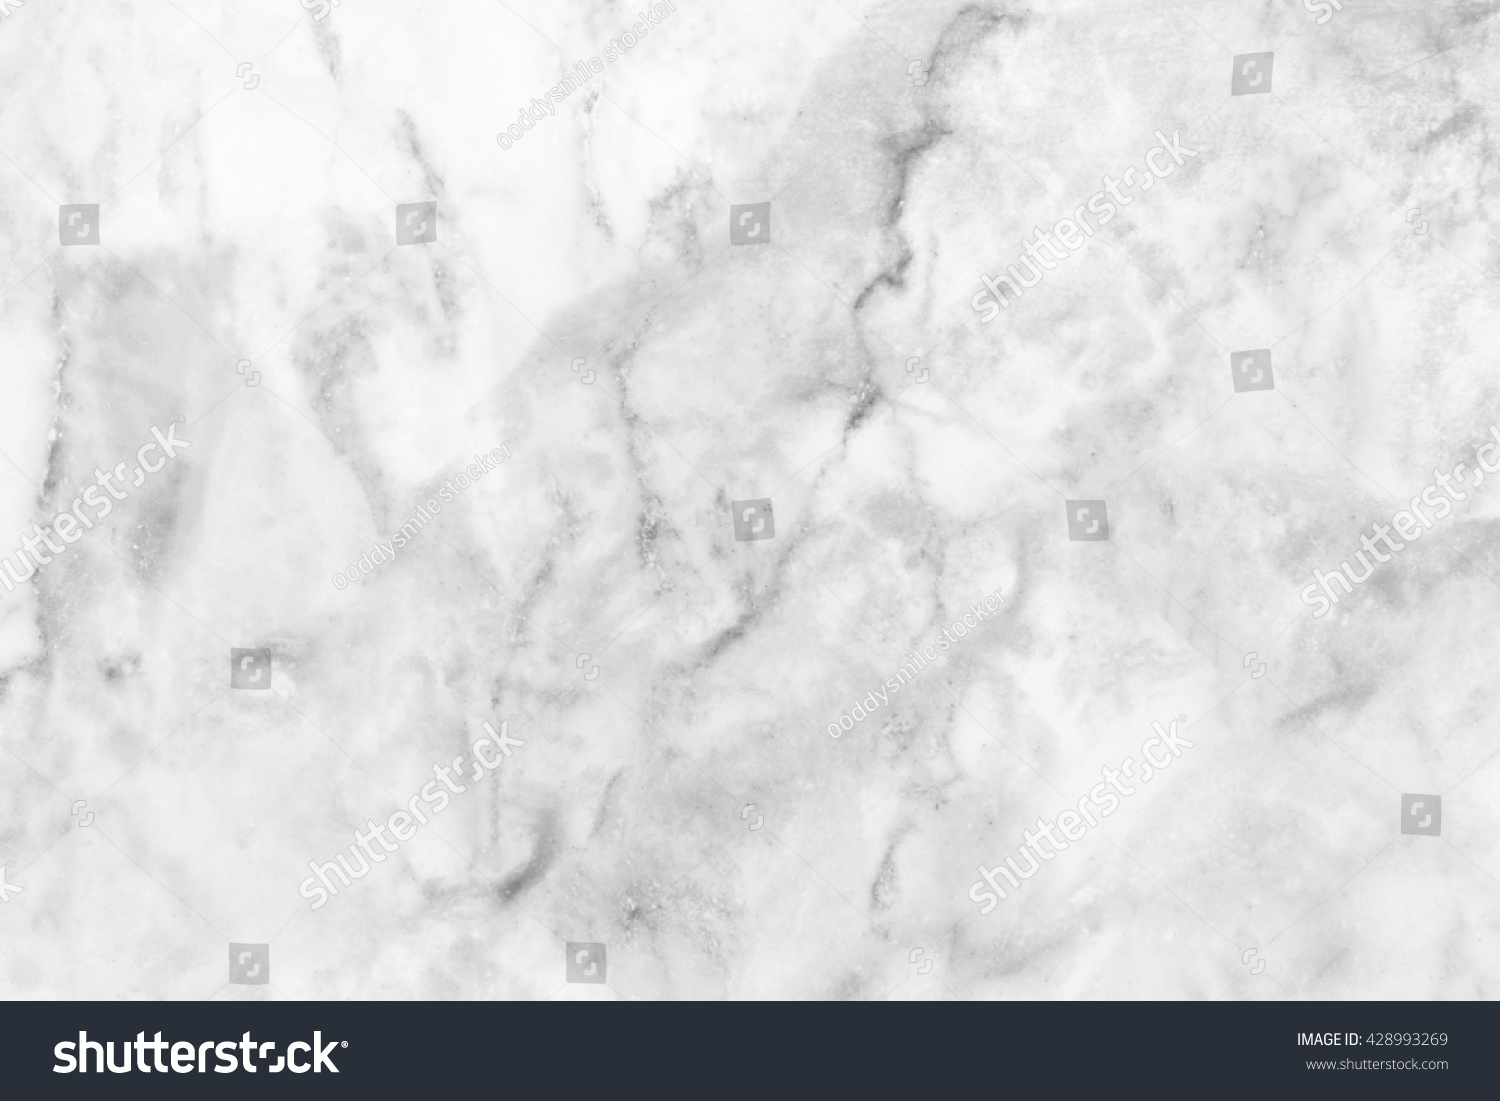 Good Wallpaper High Quality Marble - stock-photo-grey-marble-texture-background-floor-decorative-stone-interior-stone-gray-marble-pattern-wallpaper-428993269  2018_266843.jpg